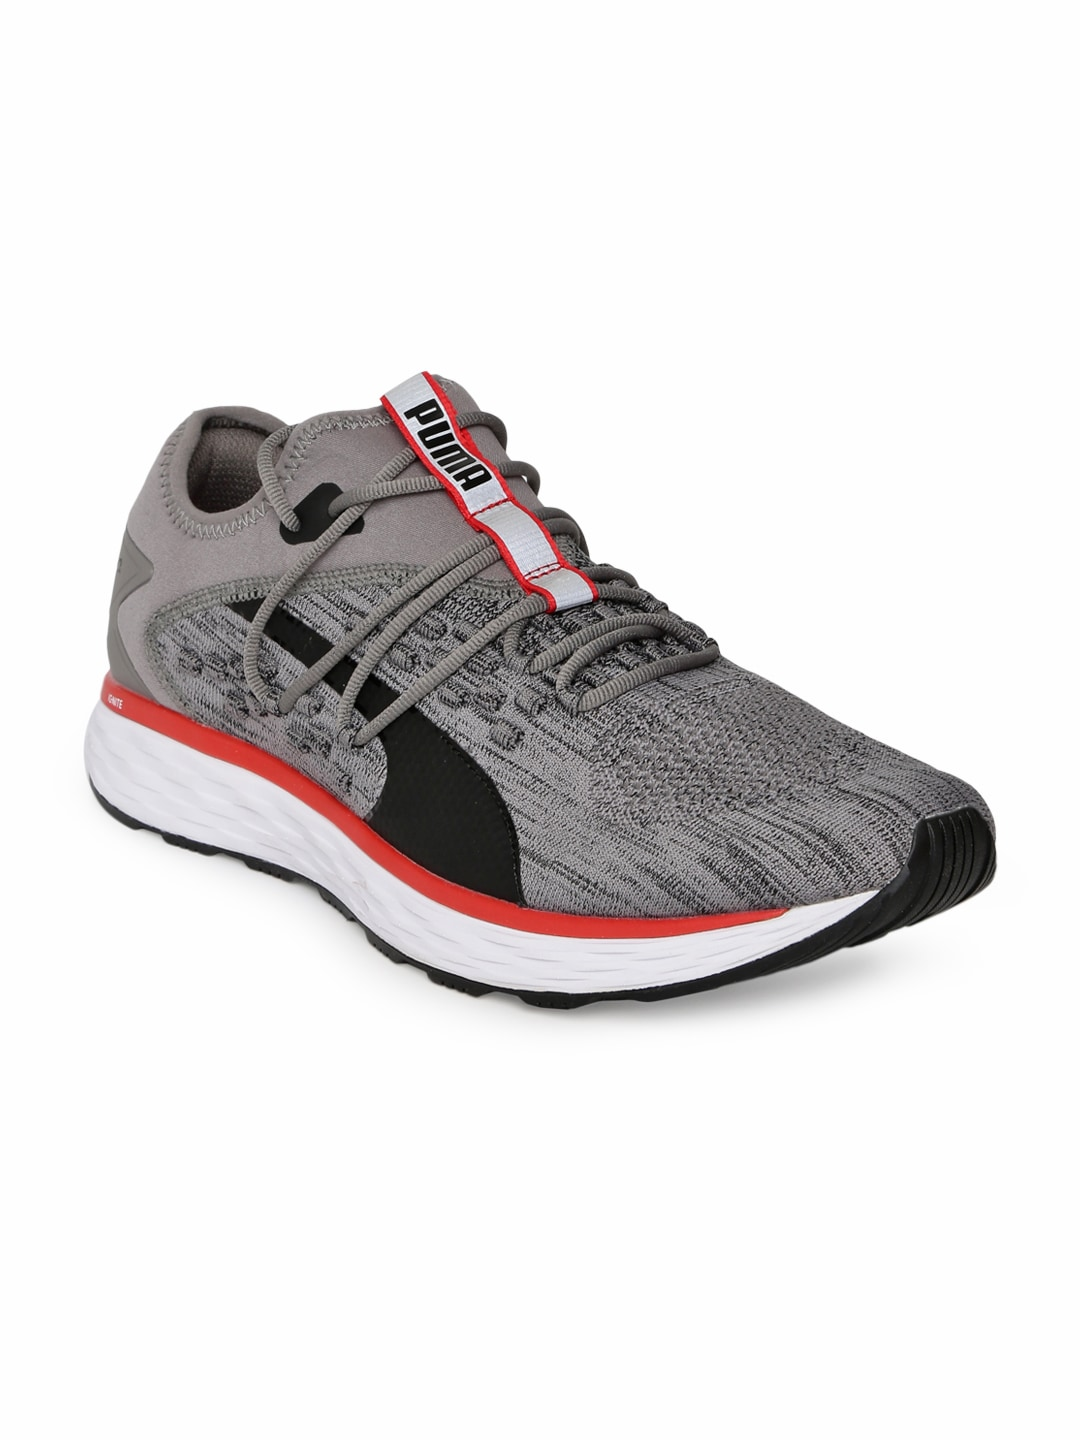 6080d862cd9 Puma Shoes - Buy Puma Shoes for Men   Women Online in India